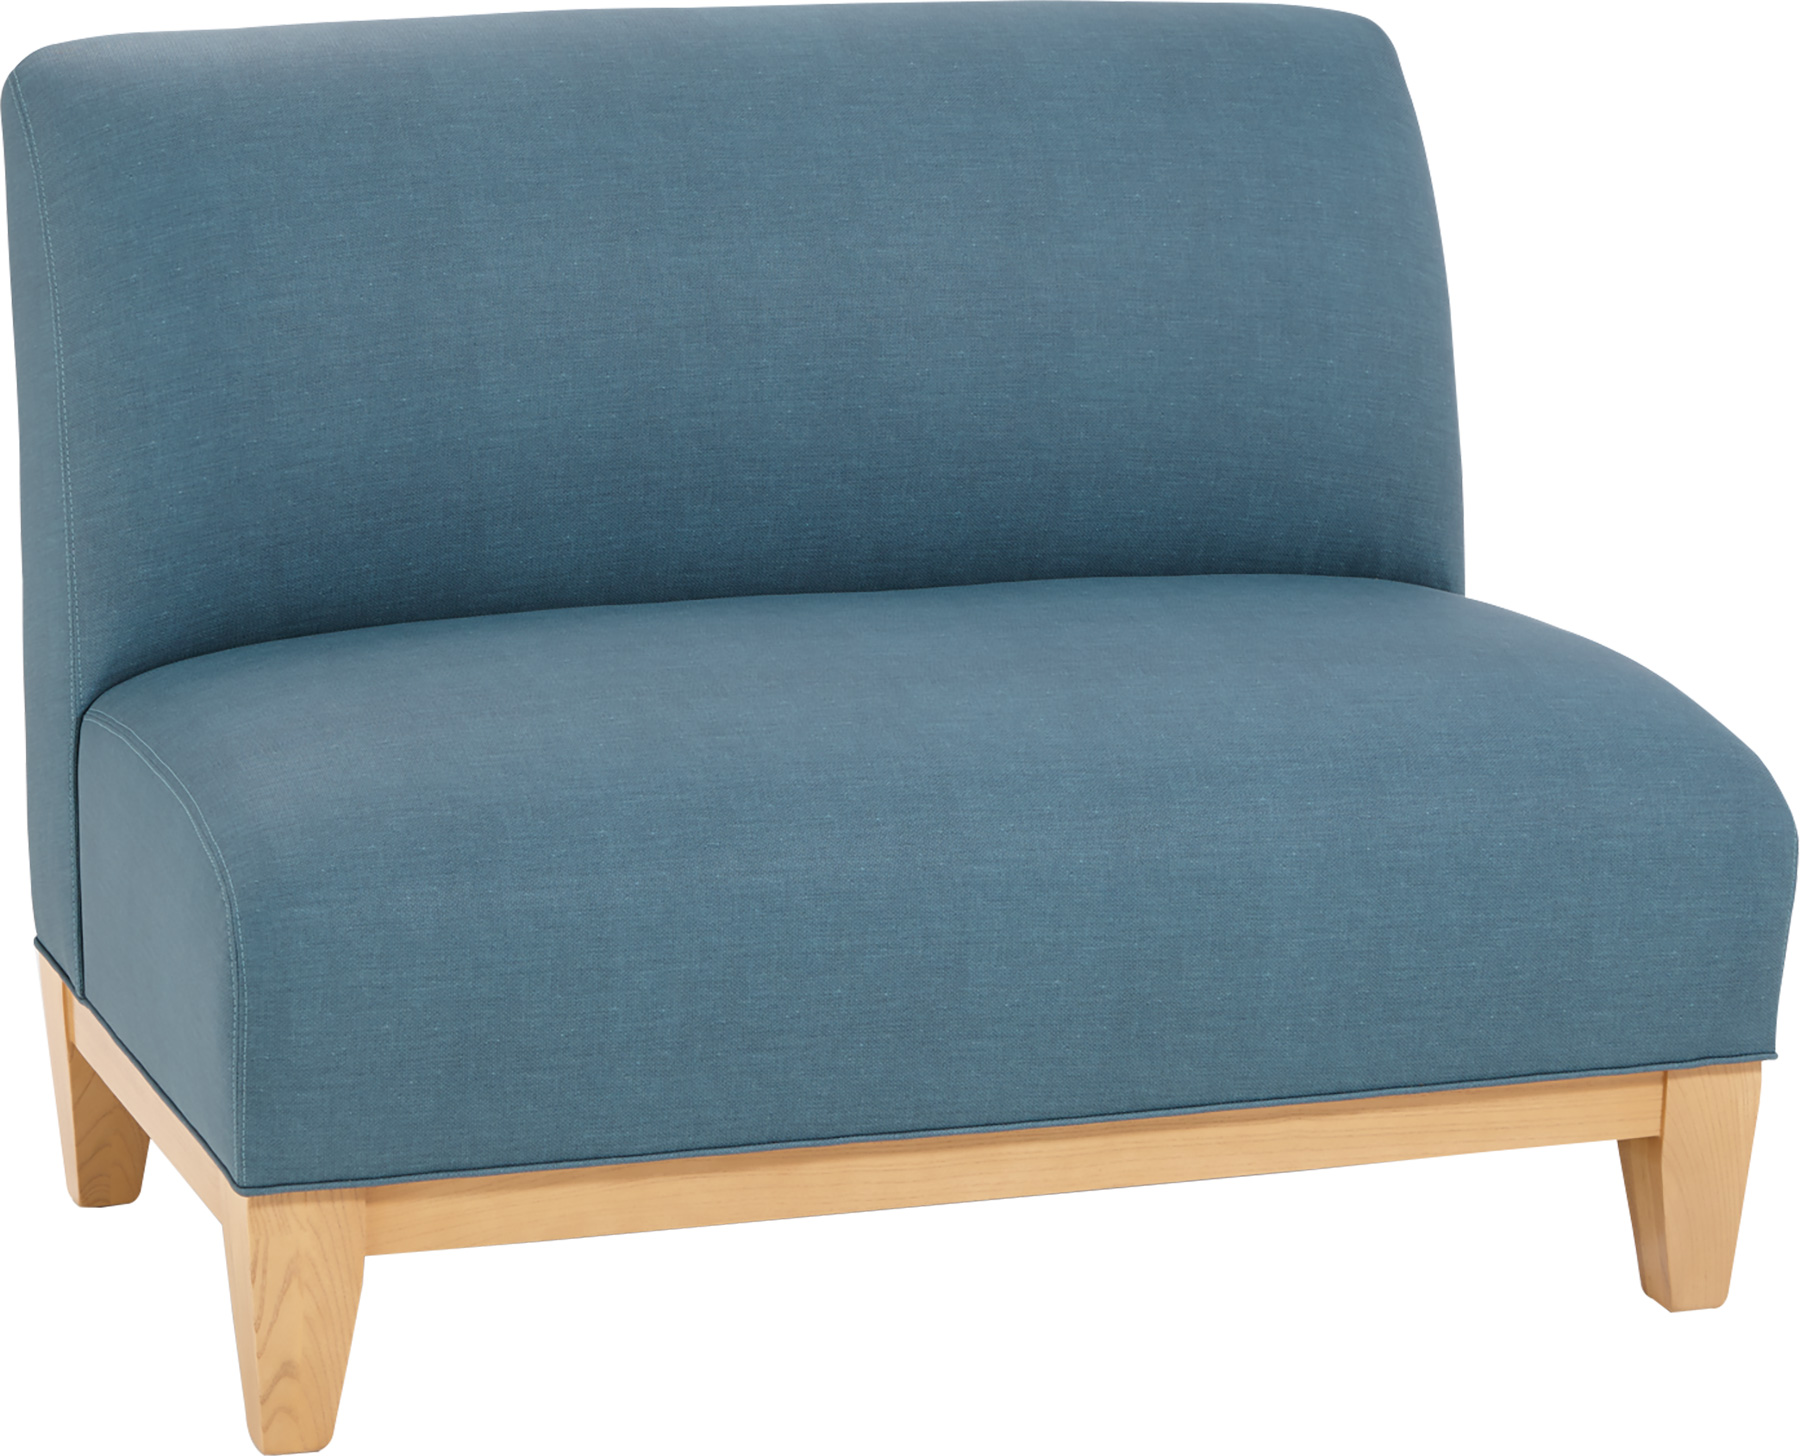 AC Furniture Armless Upholstered Seating